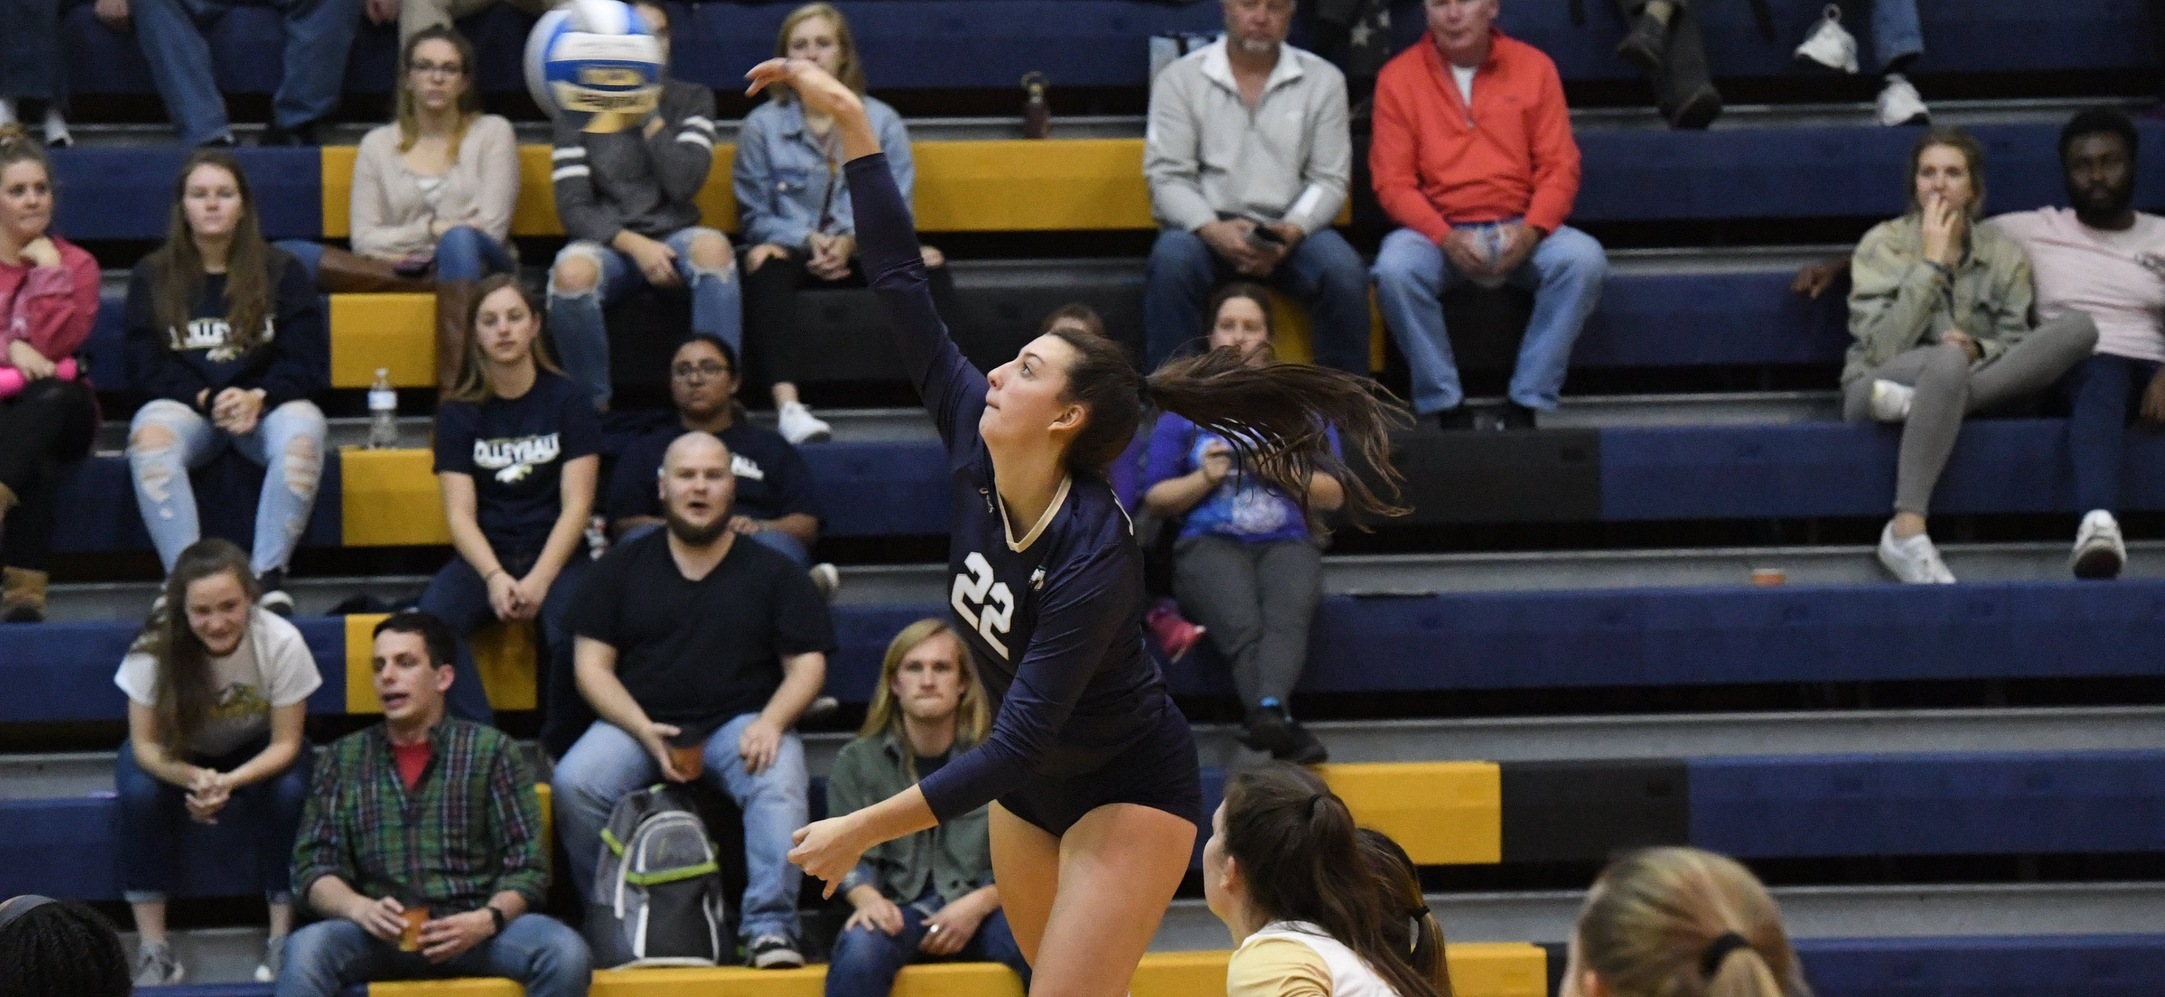 Women's Volleyball Sweeps Scranton to Finish Conference Play Unbeaten